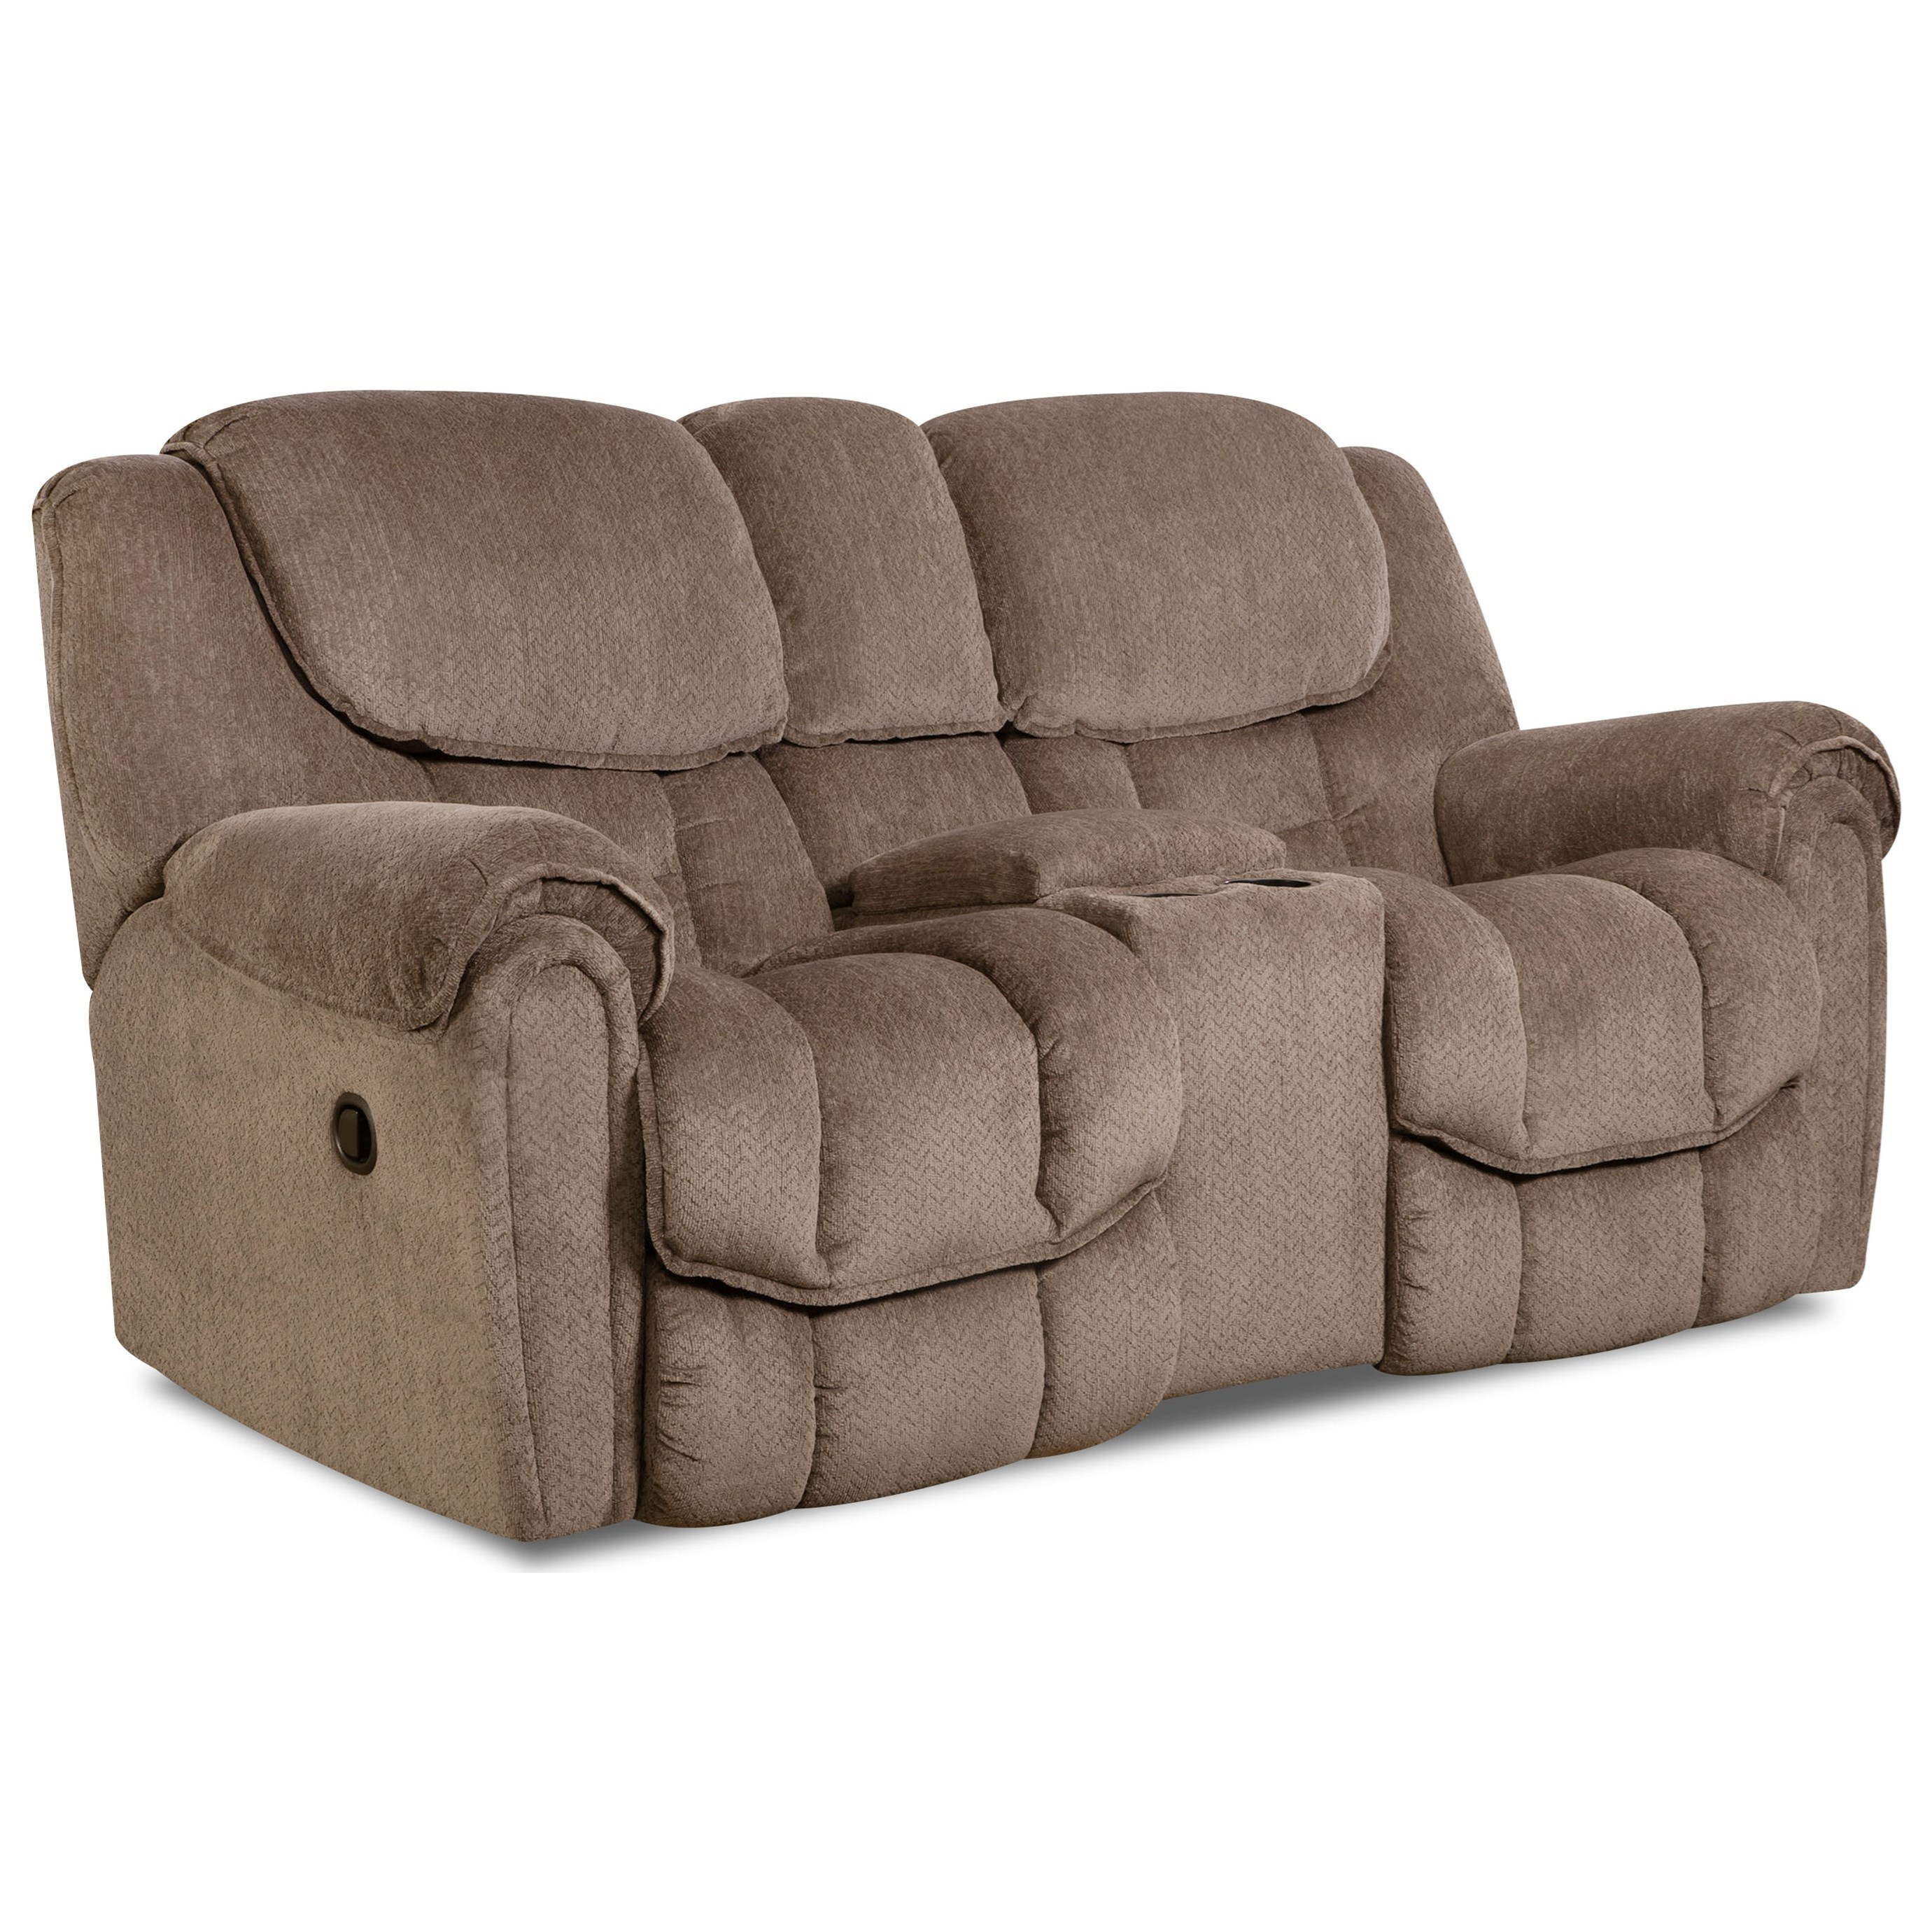 122 Rocking Console Reclining Loveseat by HomeStretch at Turk Furniture